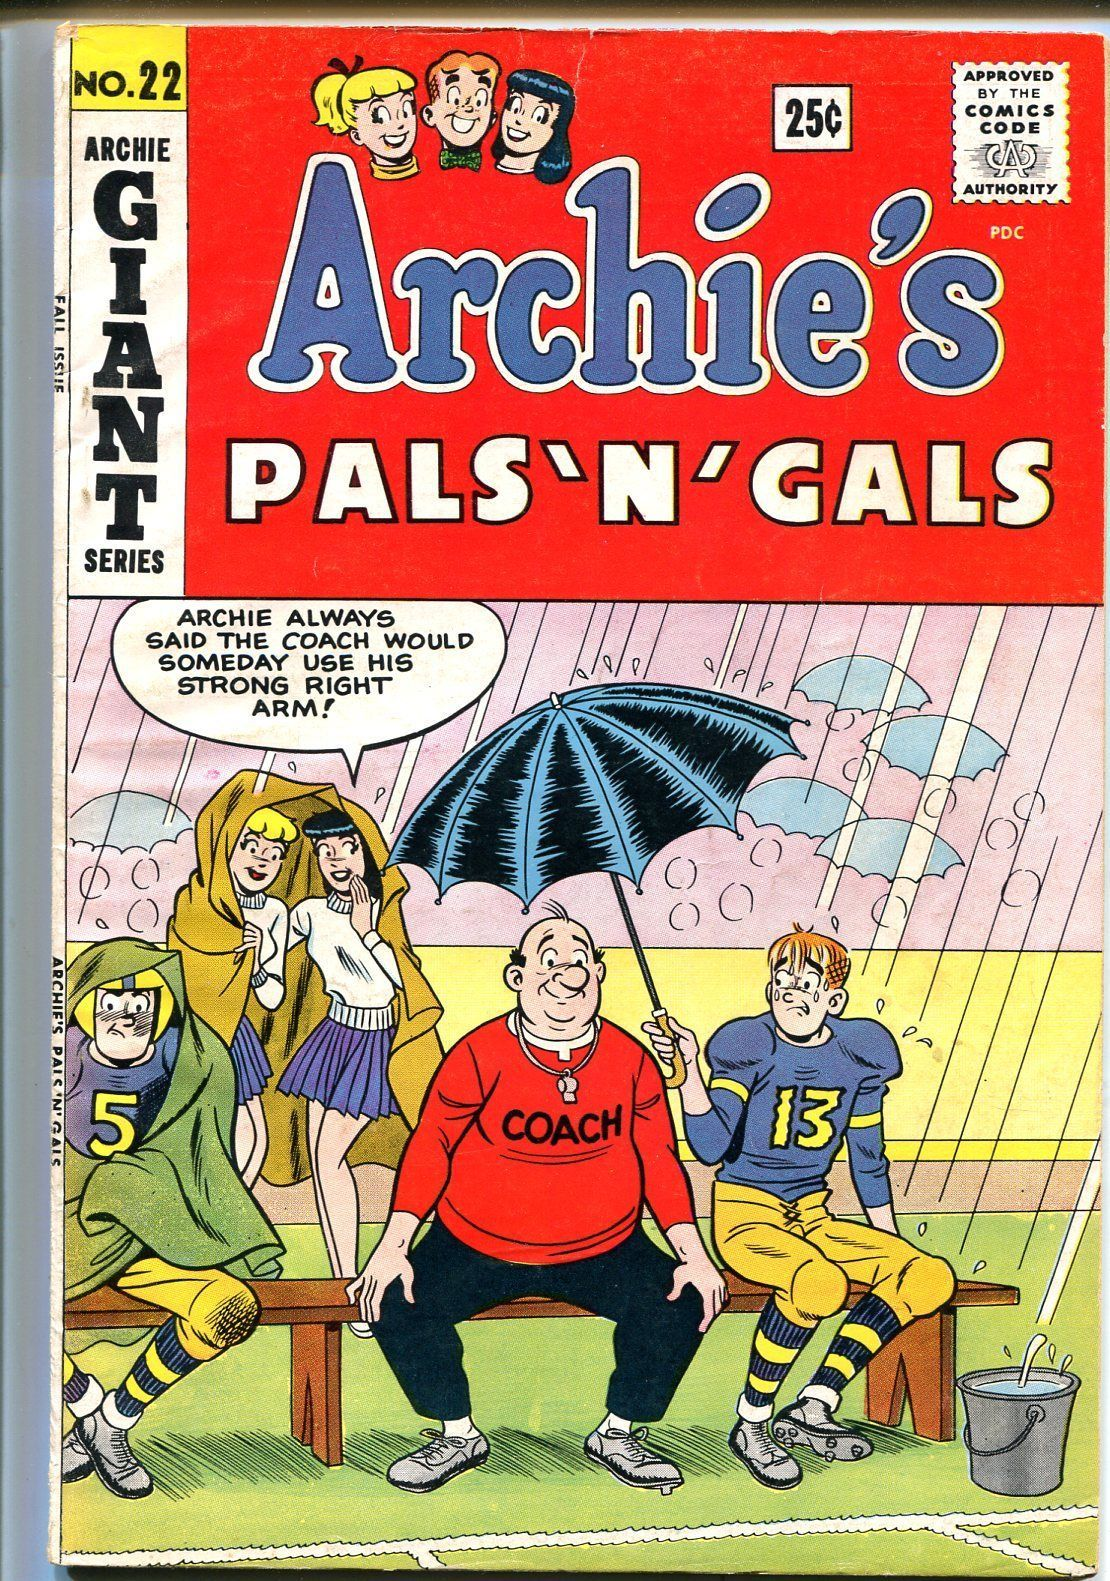 Primary image for Archie's Pals 'n' Gals #22 1962-MLJ-Betty-Veronica-Giant issue-VG/FN